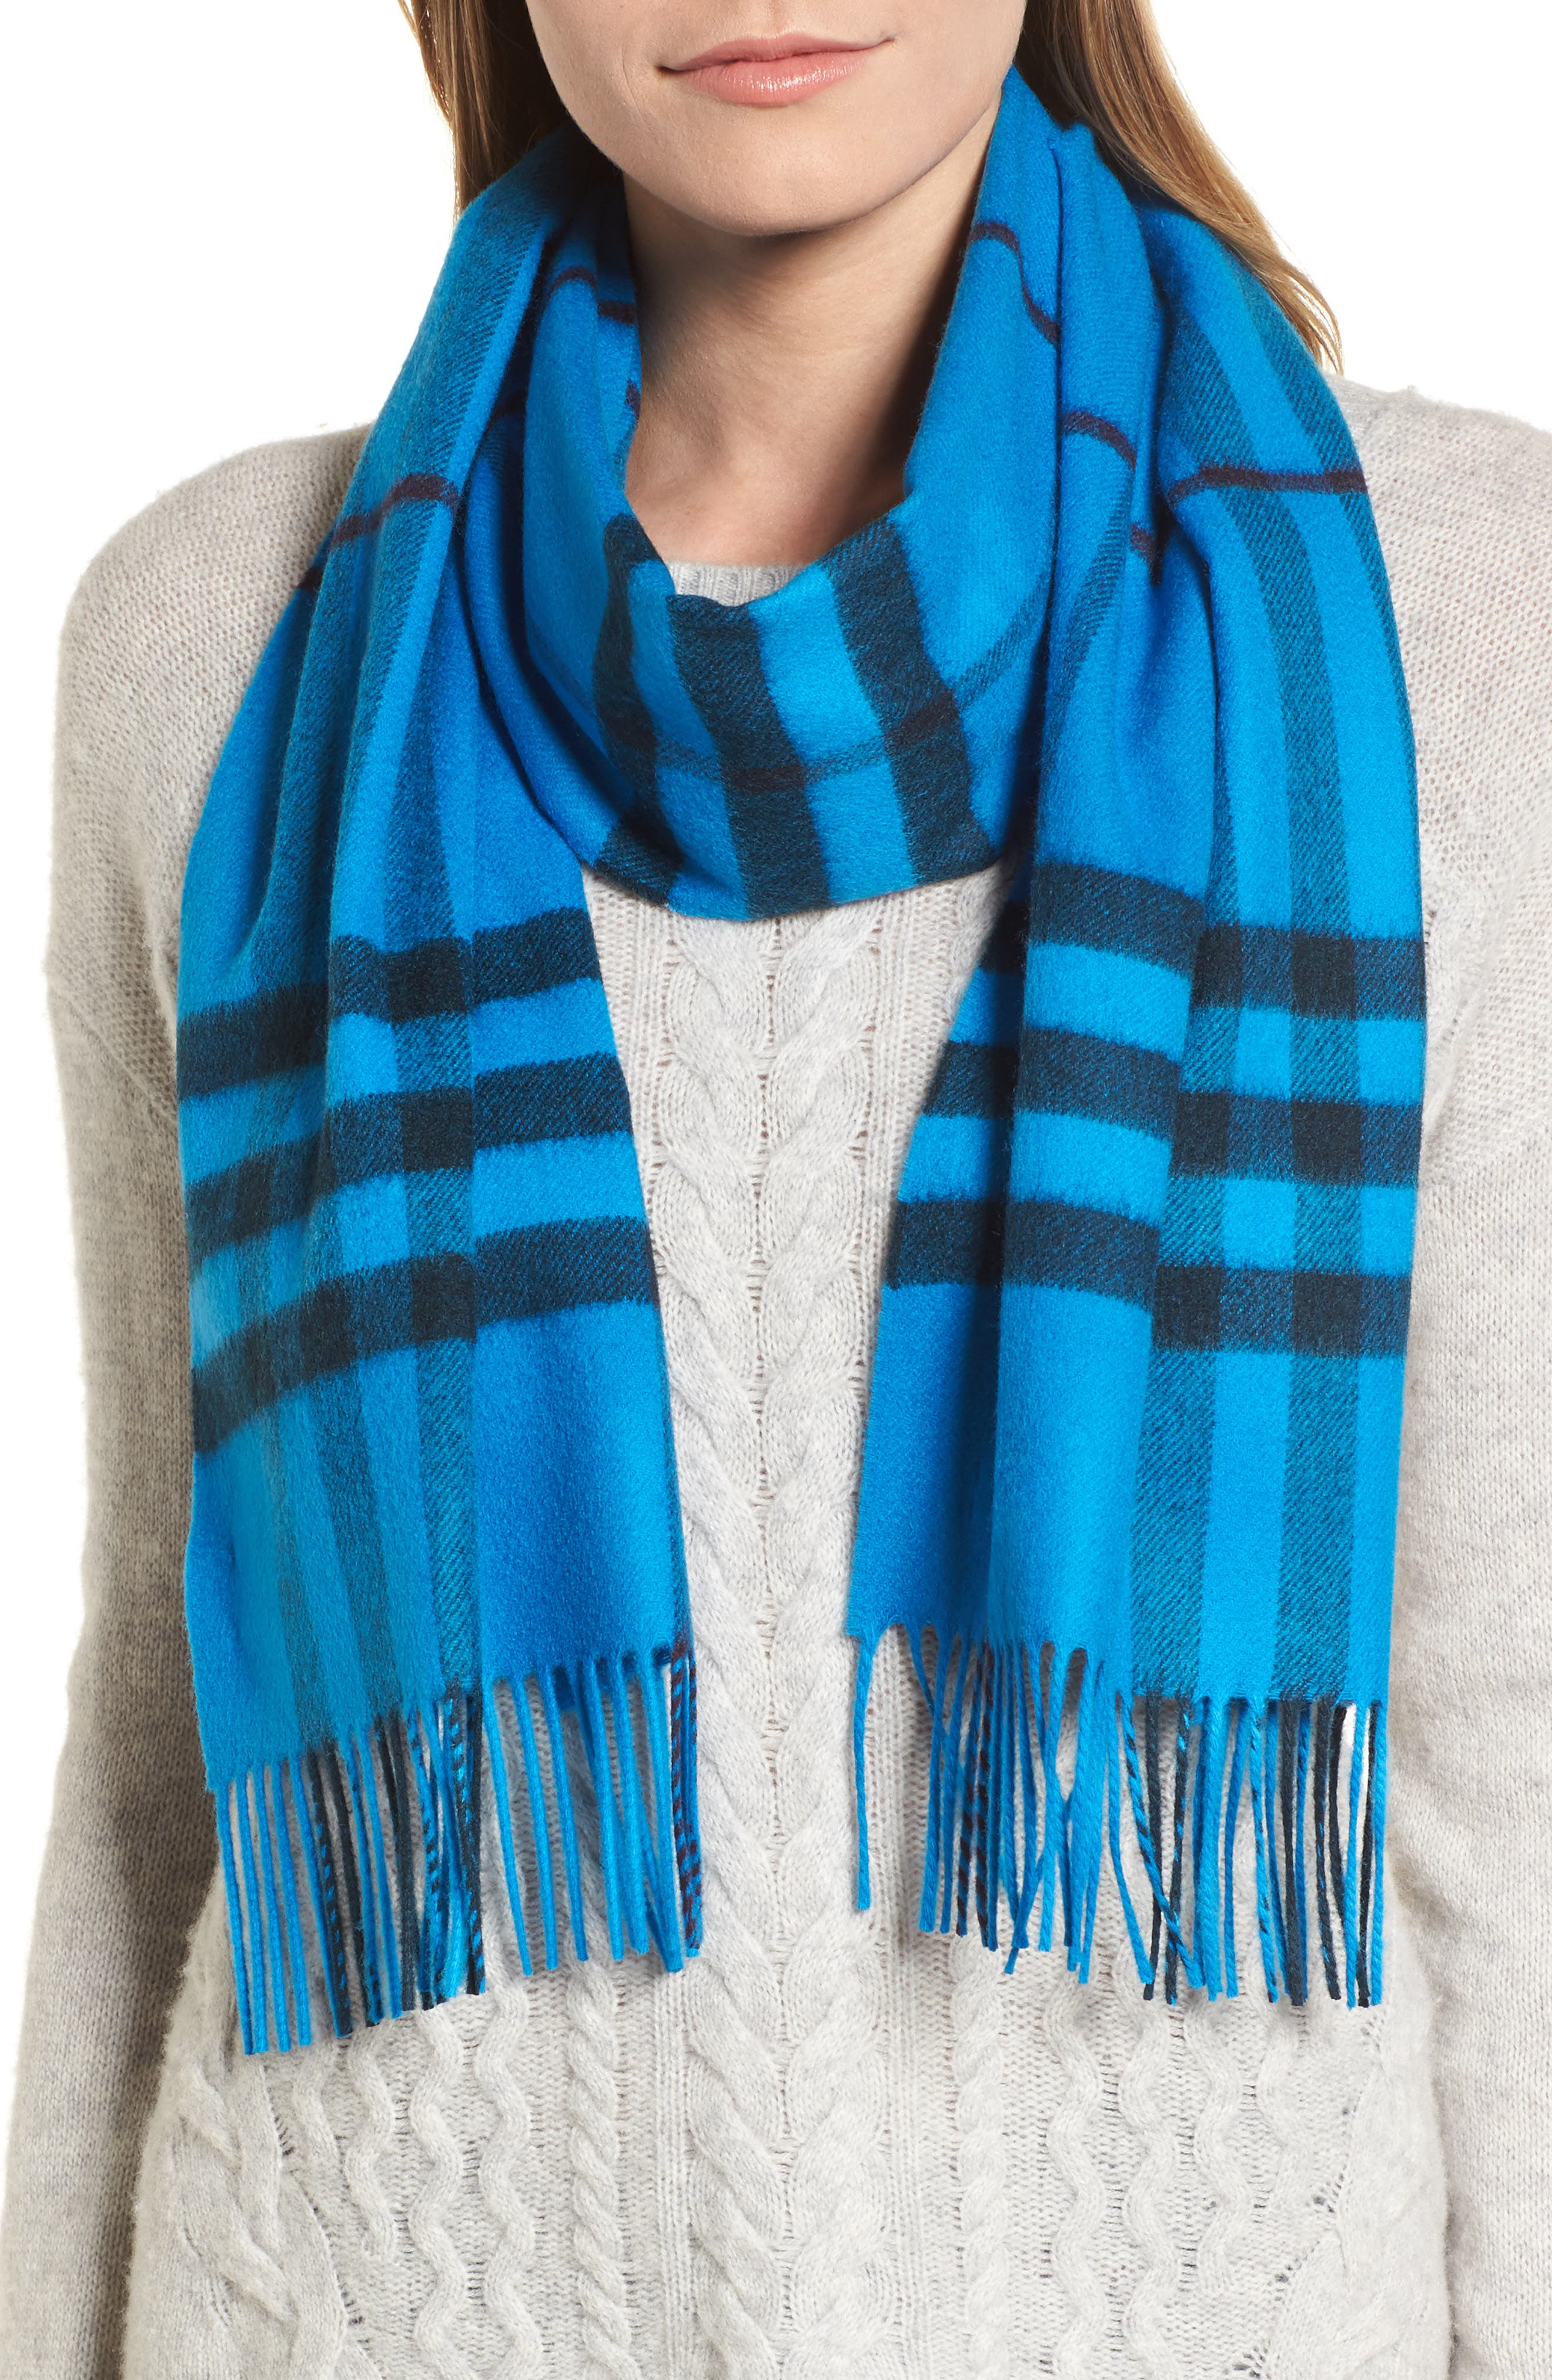 Overdyed Giant Check Cashmere Scarf,                             Alternate thumbnail 2, color,